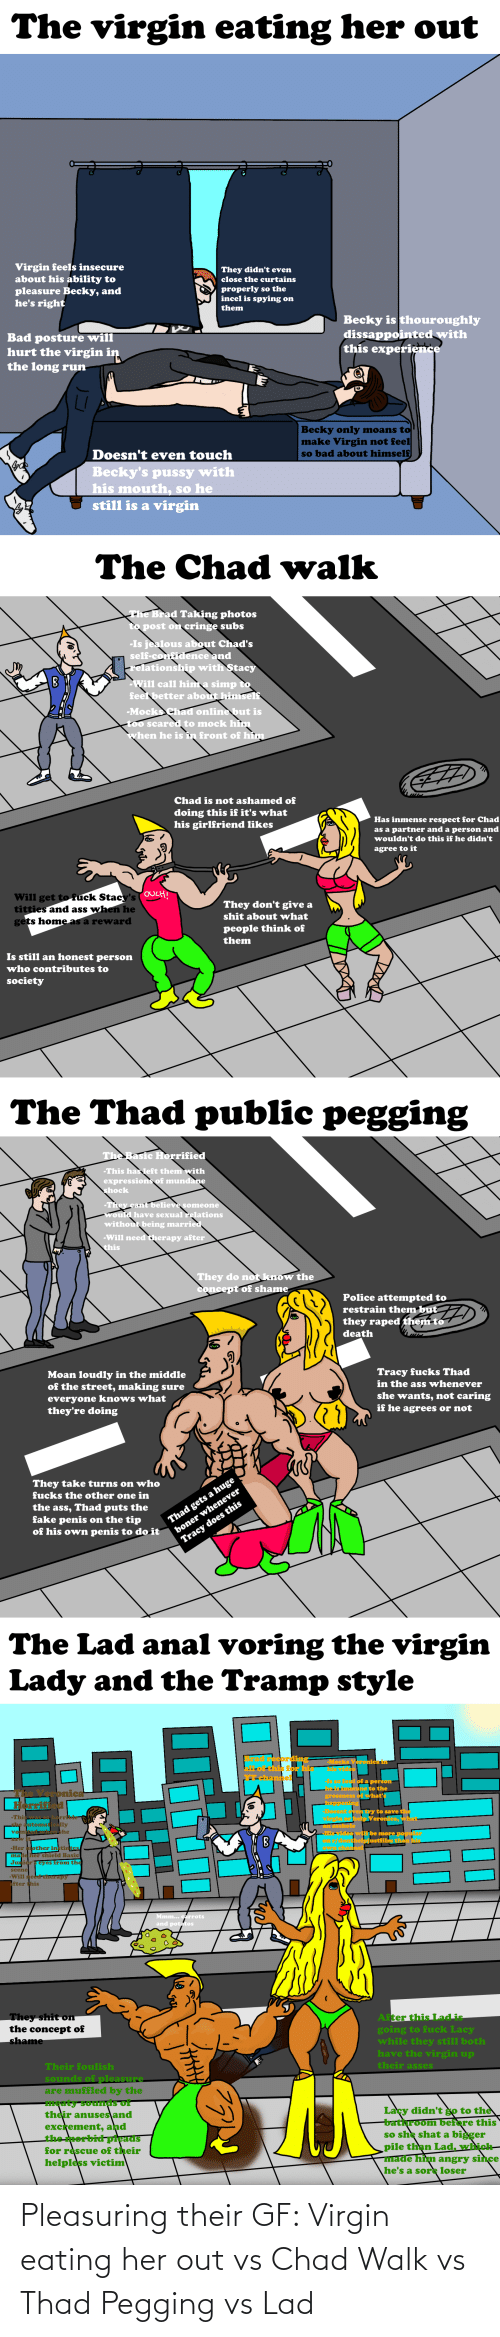 Virgin: Pleasuring their GF: Virgin eating her out vs Chad Walk vs Thad Pegging vs Lad